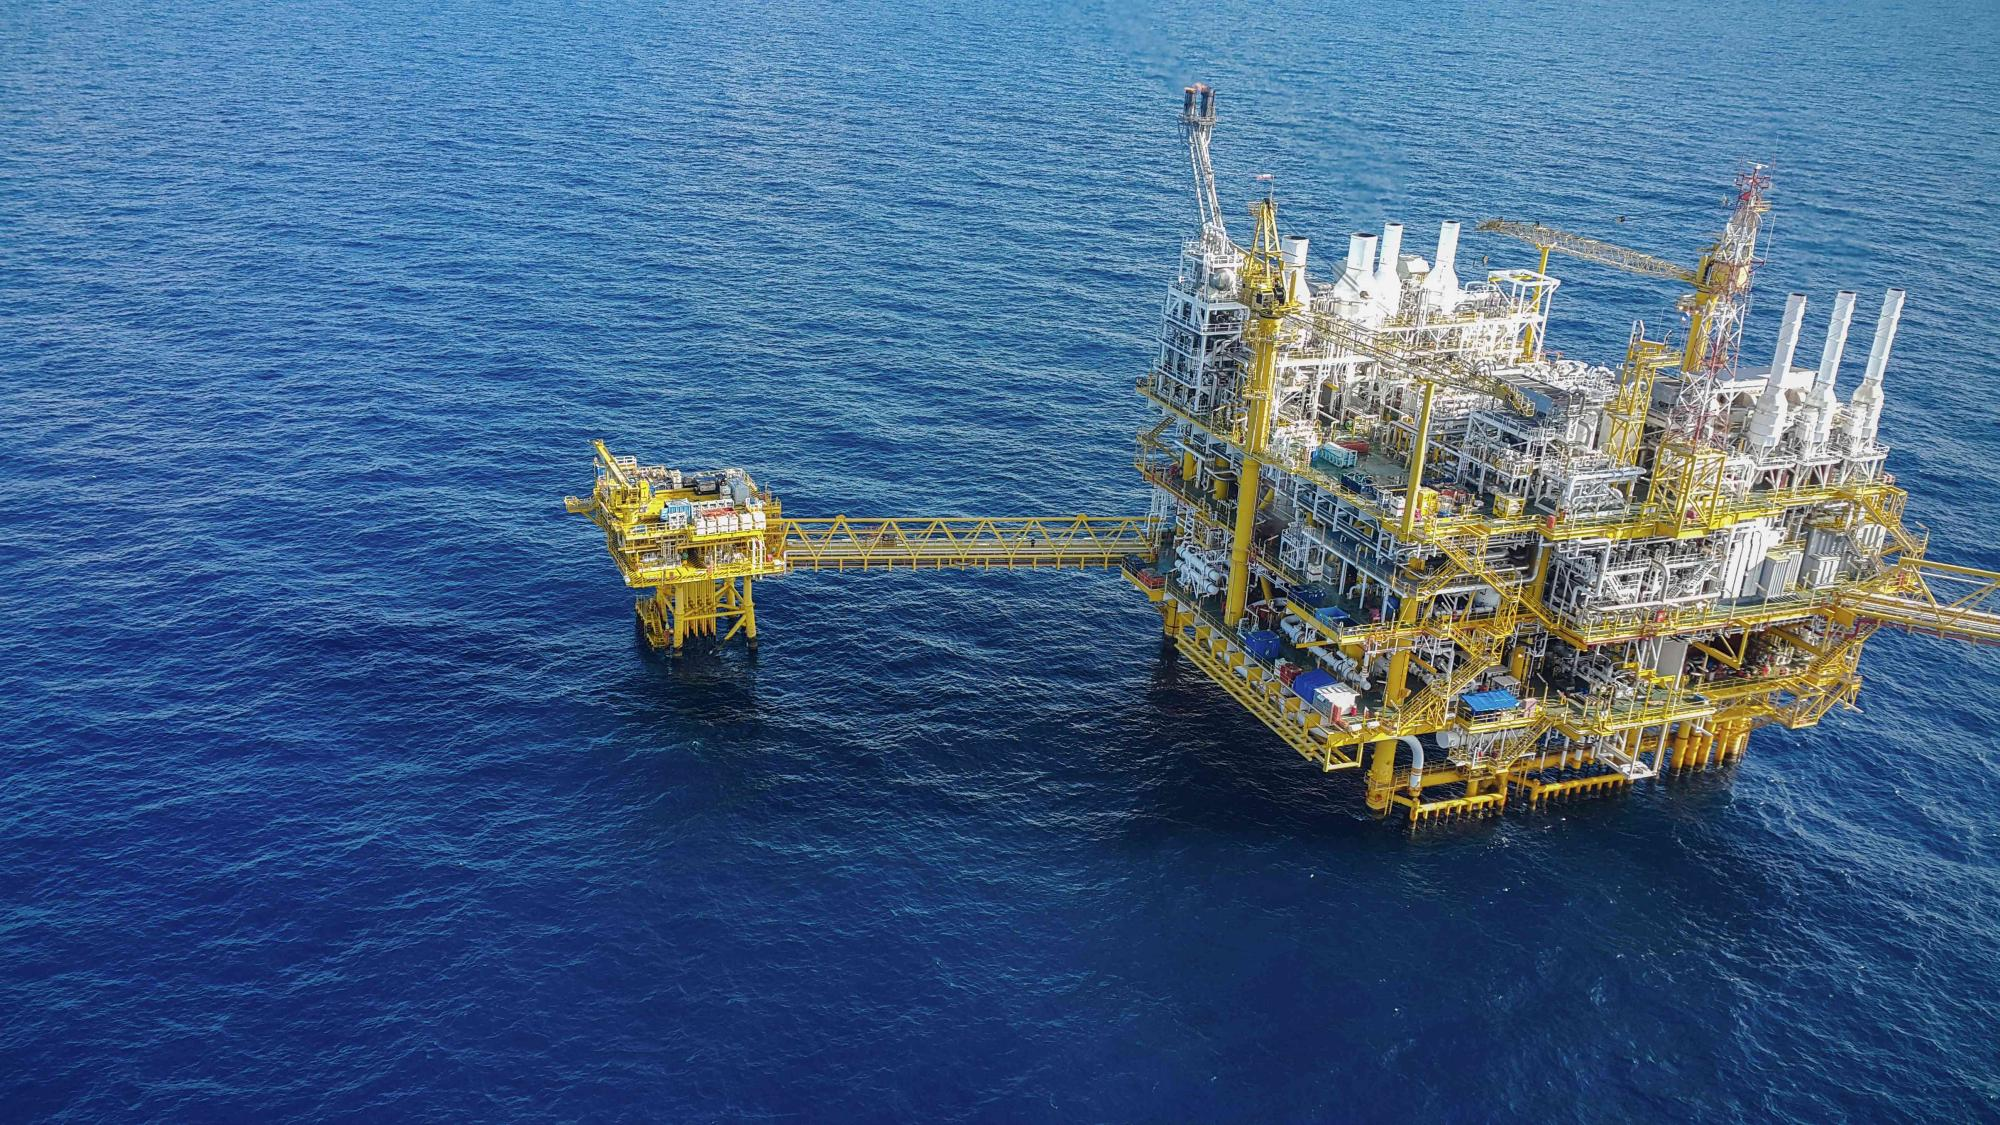 Offshore construction platform for production oil and gas, Oil a